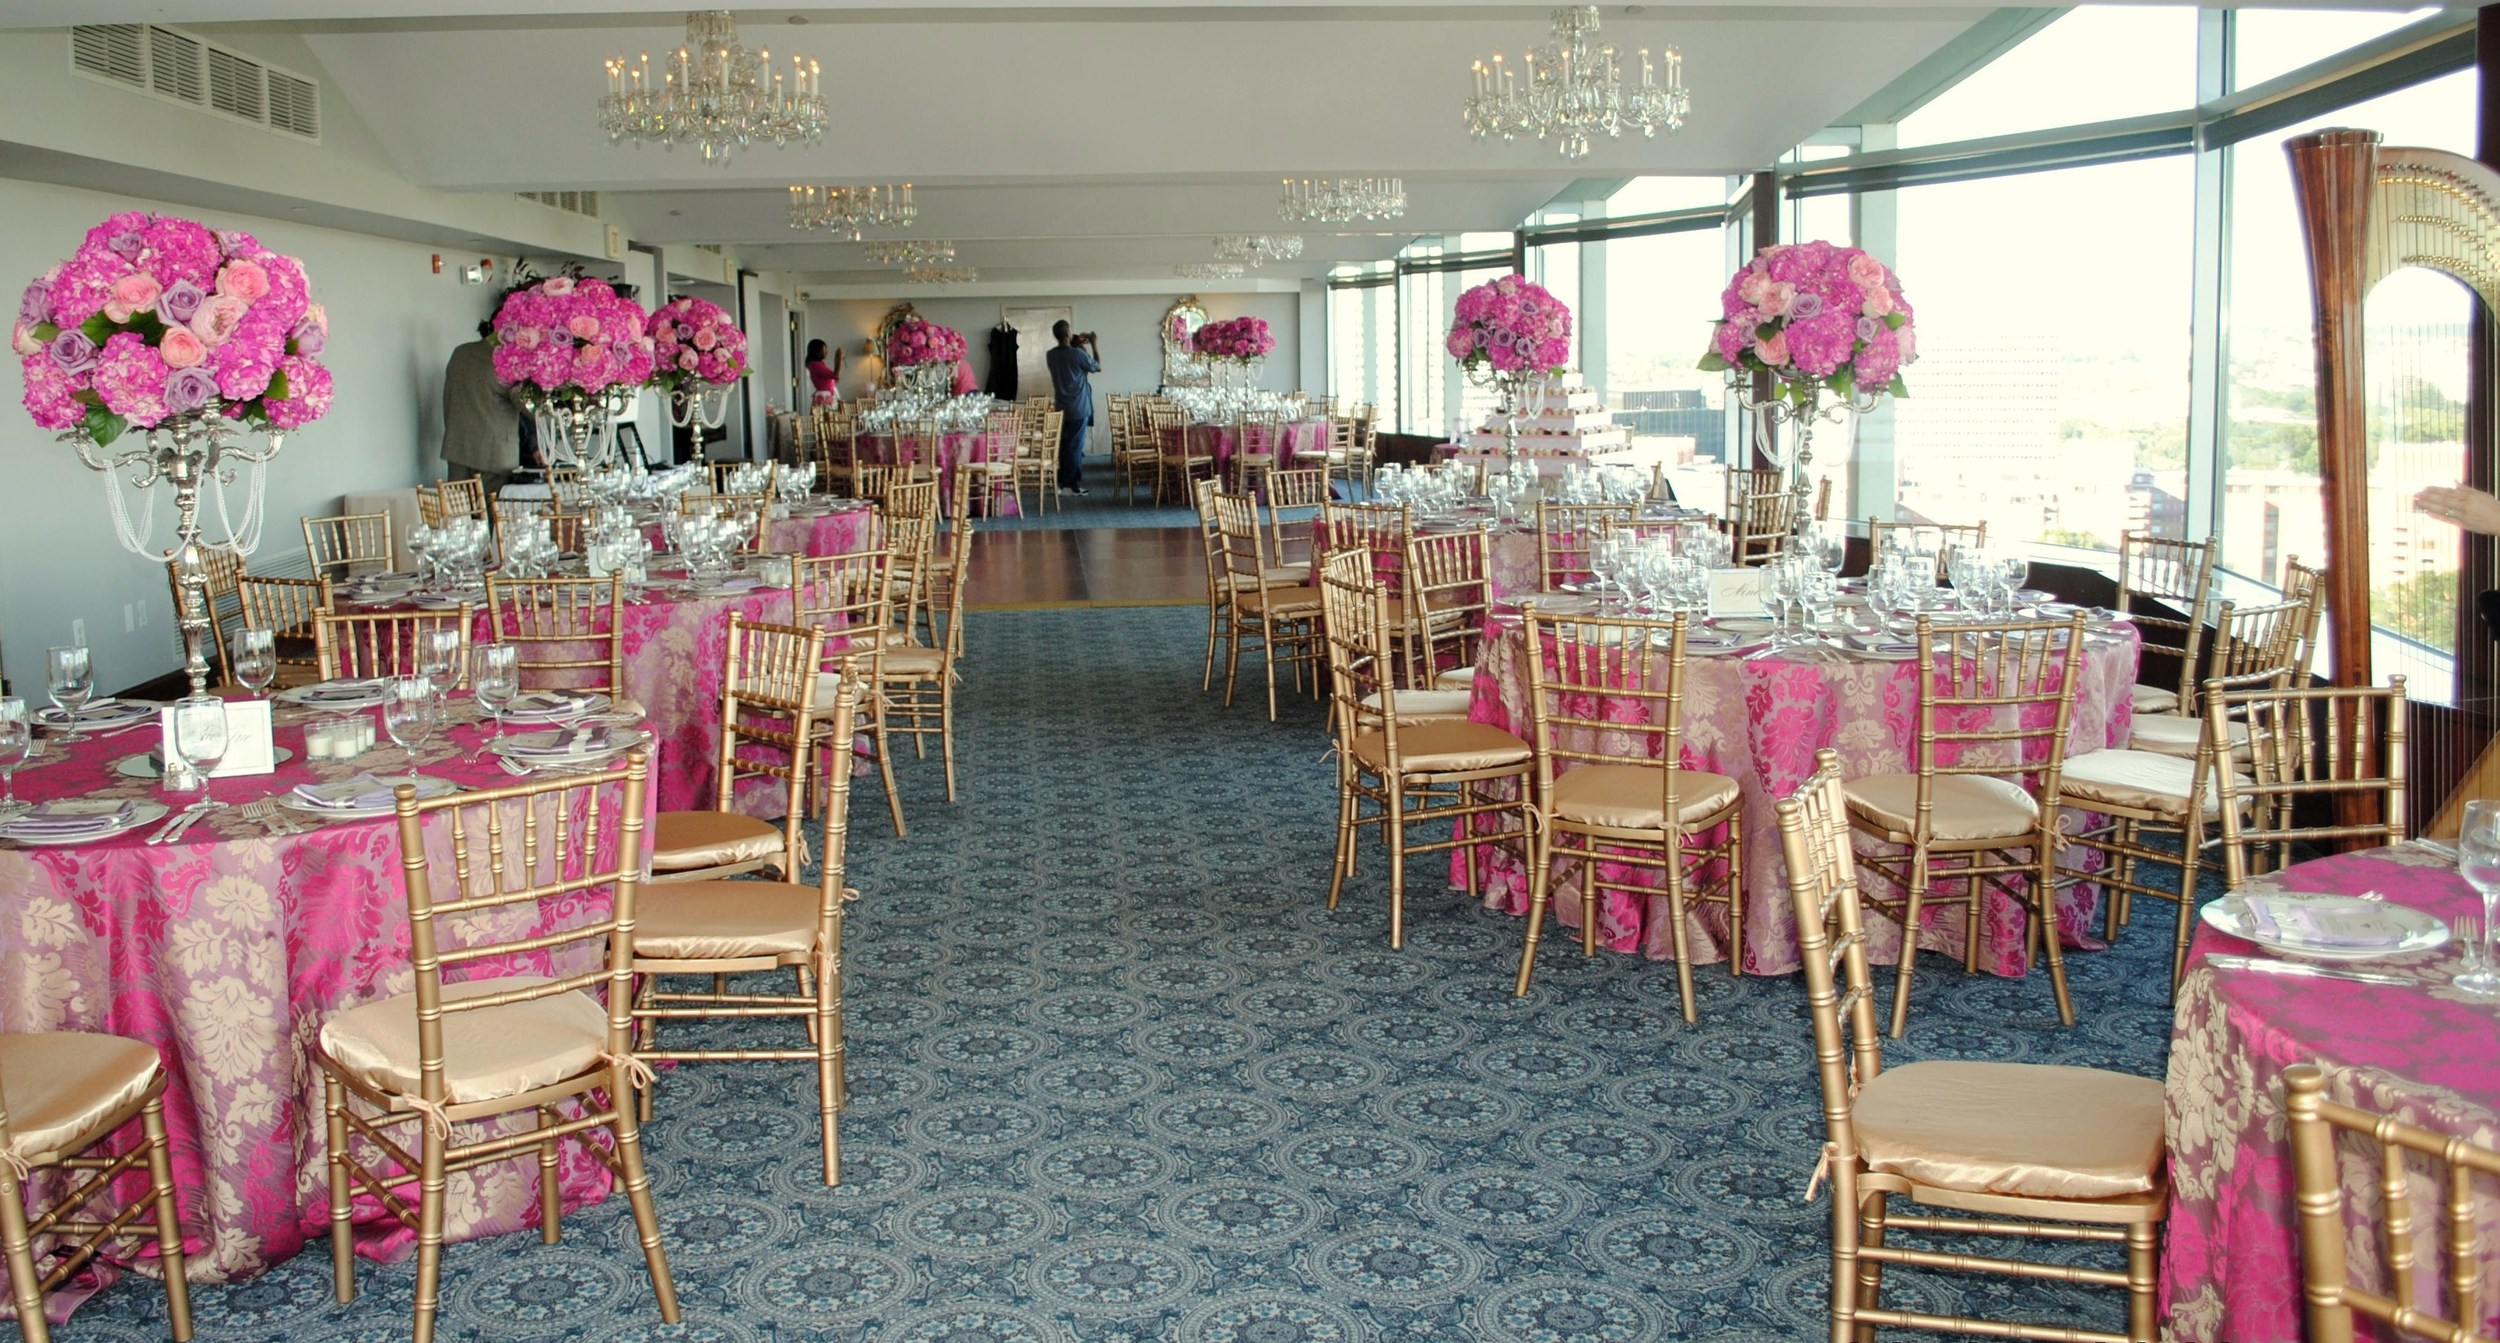 room shoot with bright pink flowers.jpg